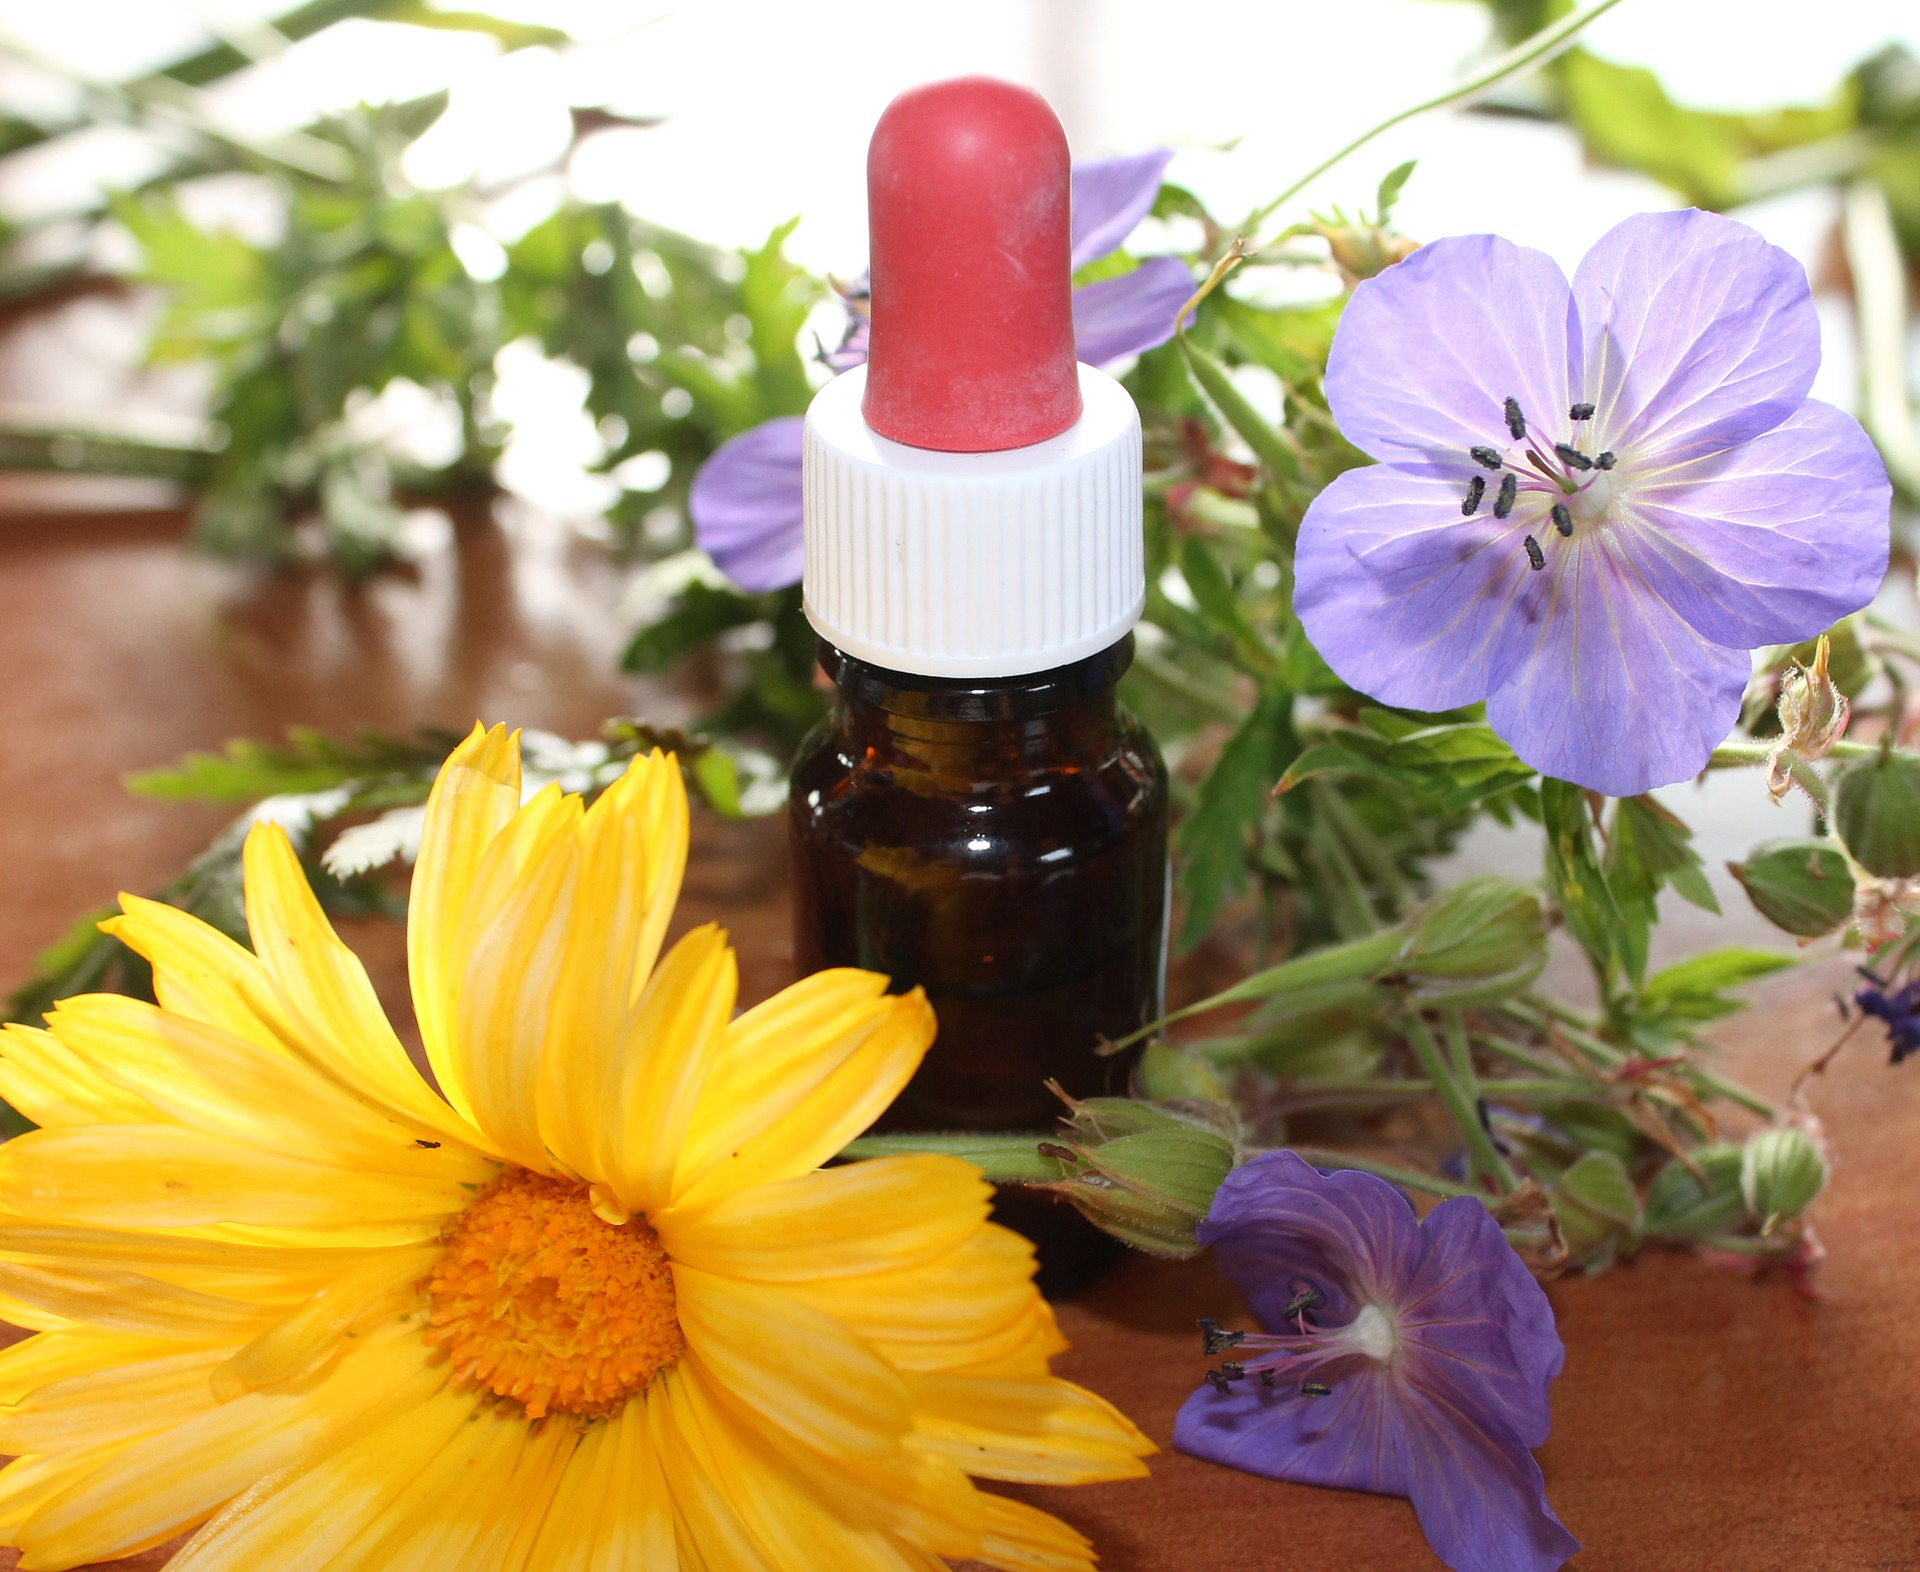 Homeopathic Remedies for Everyday Uses - With Sue King